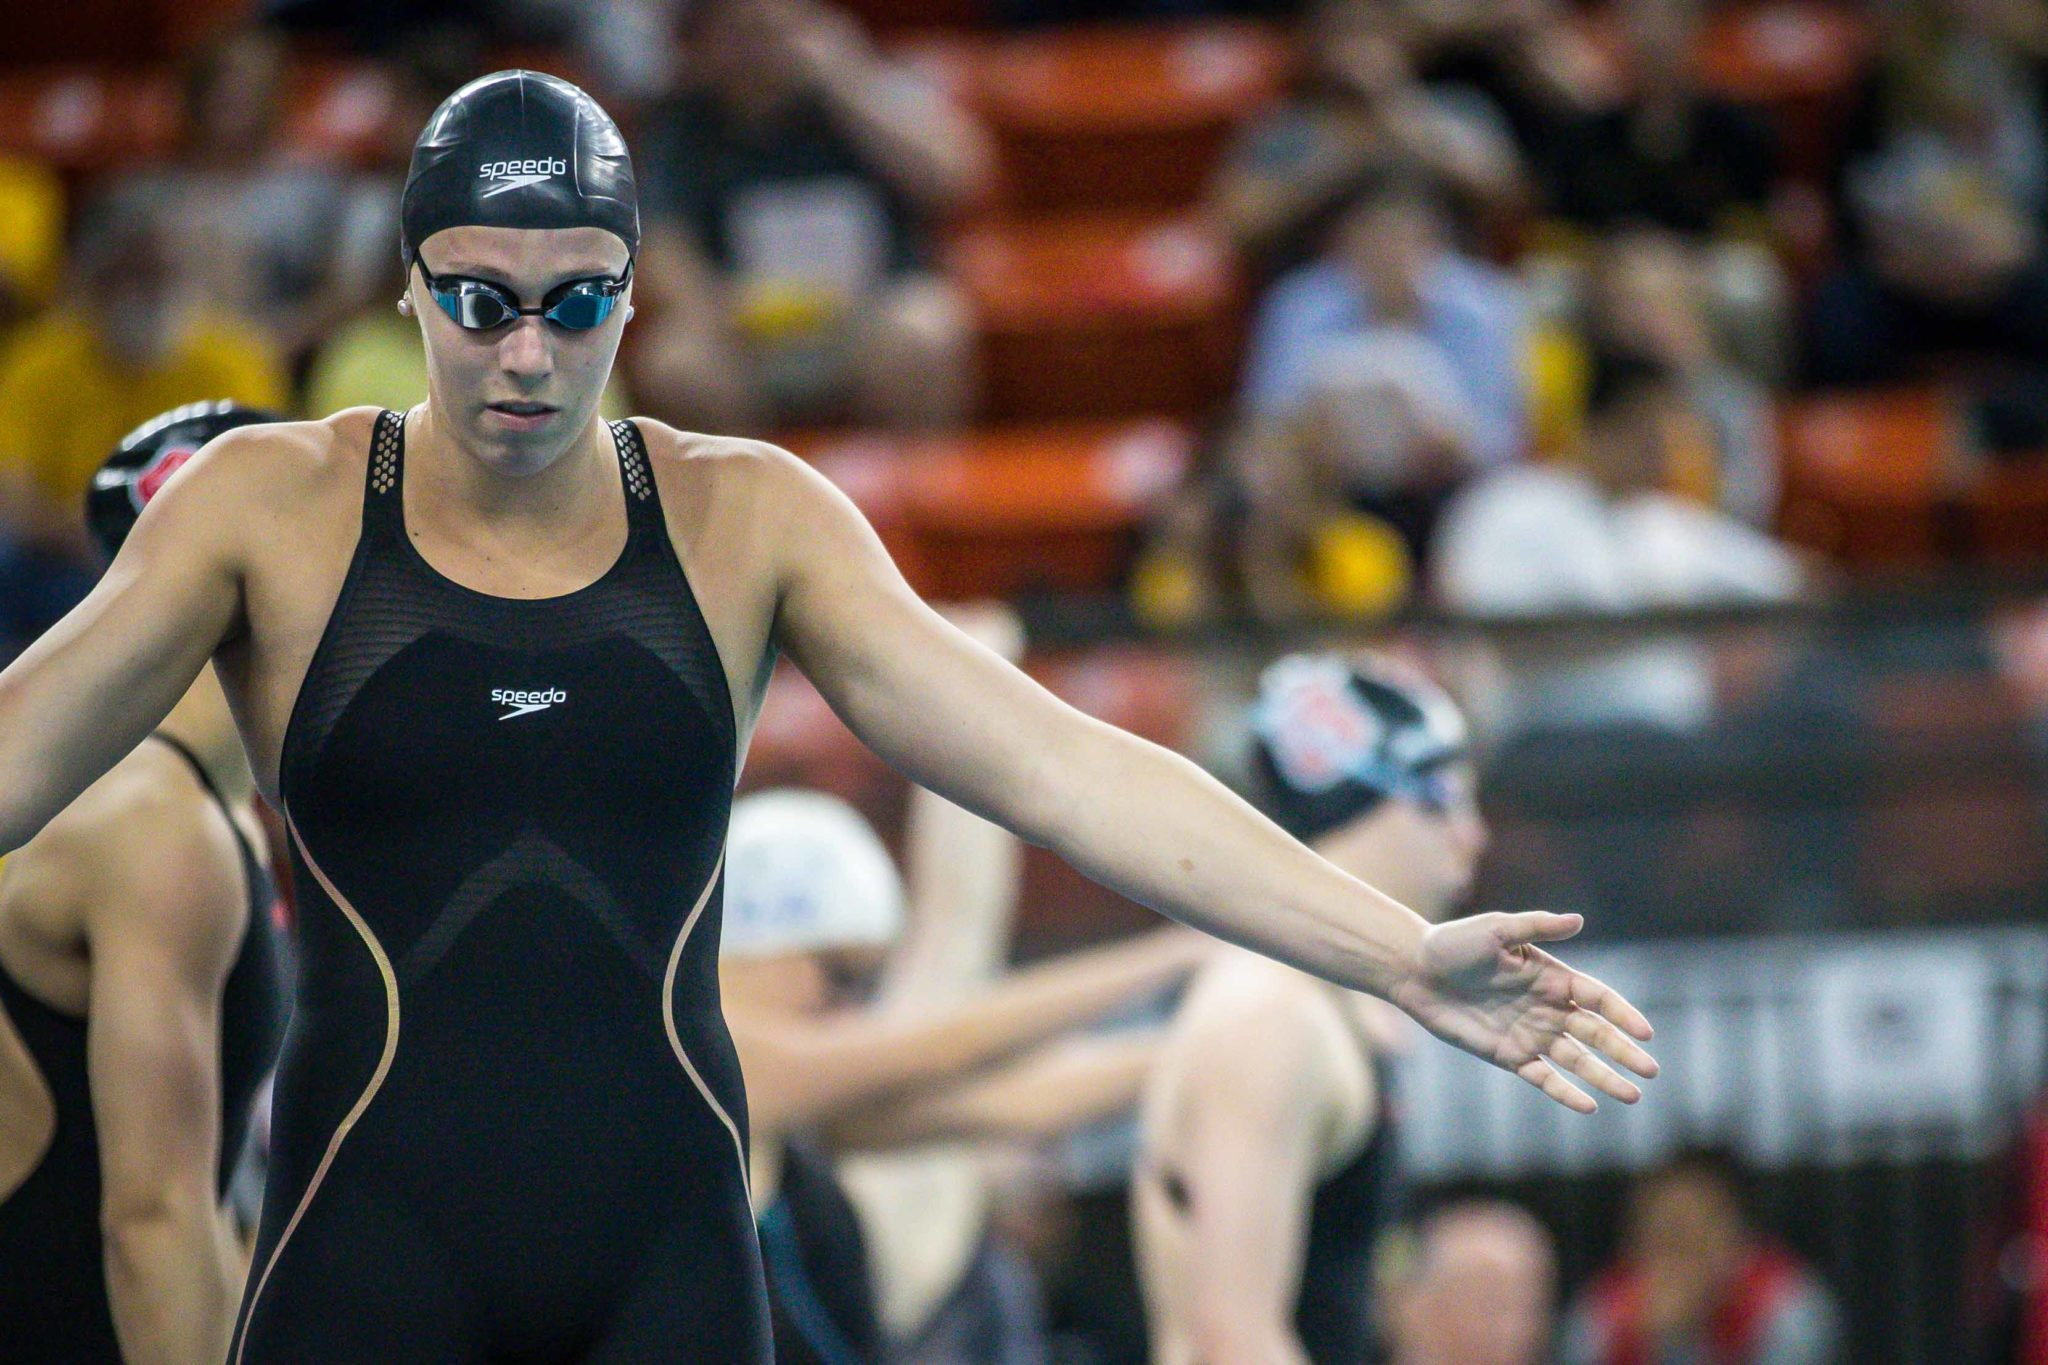 Abbey Weitzeil Becomes First Woman Under 21 Seconds in 50-Yard Freestyle